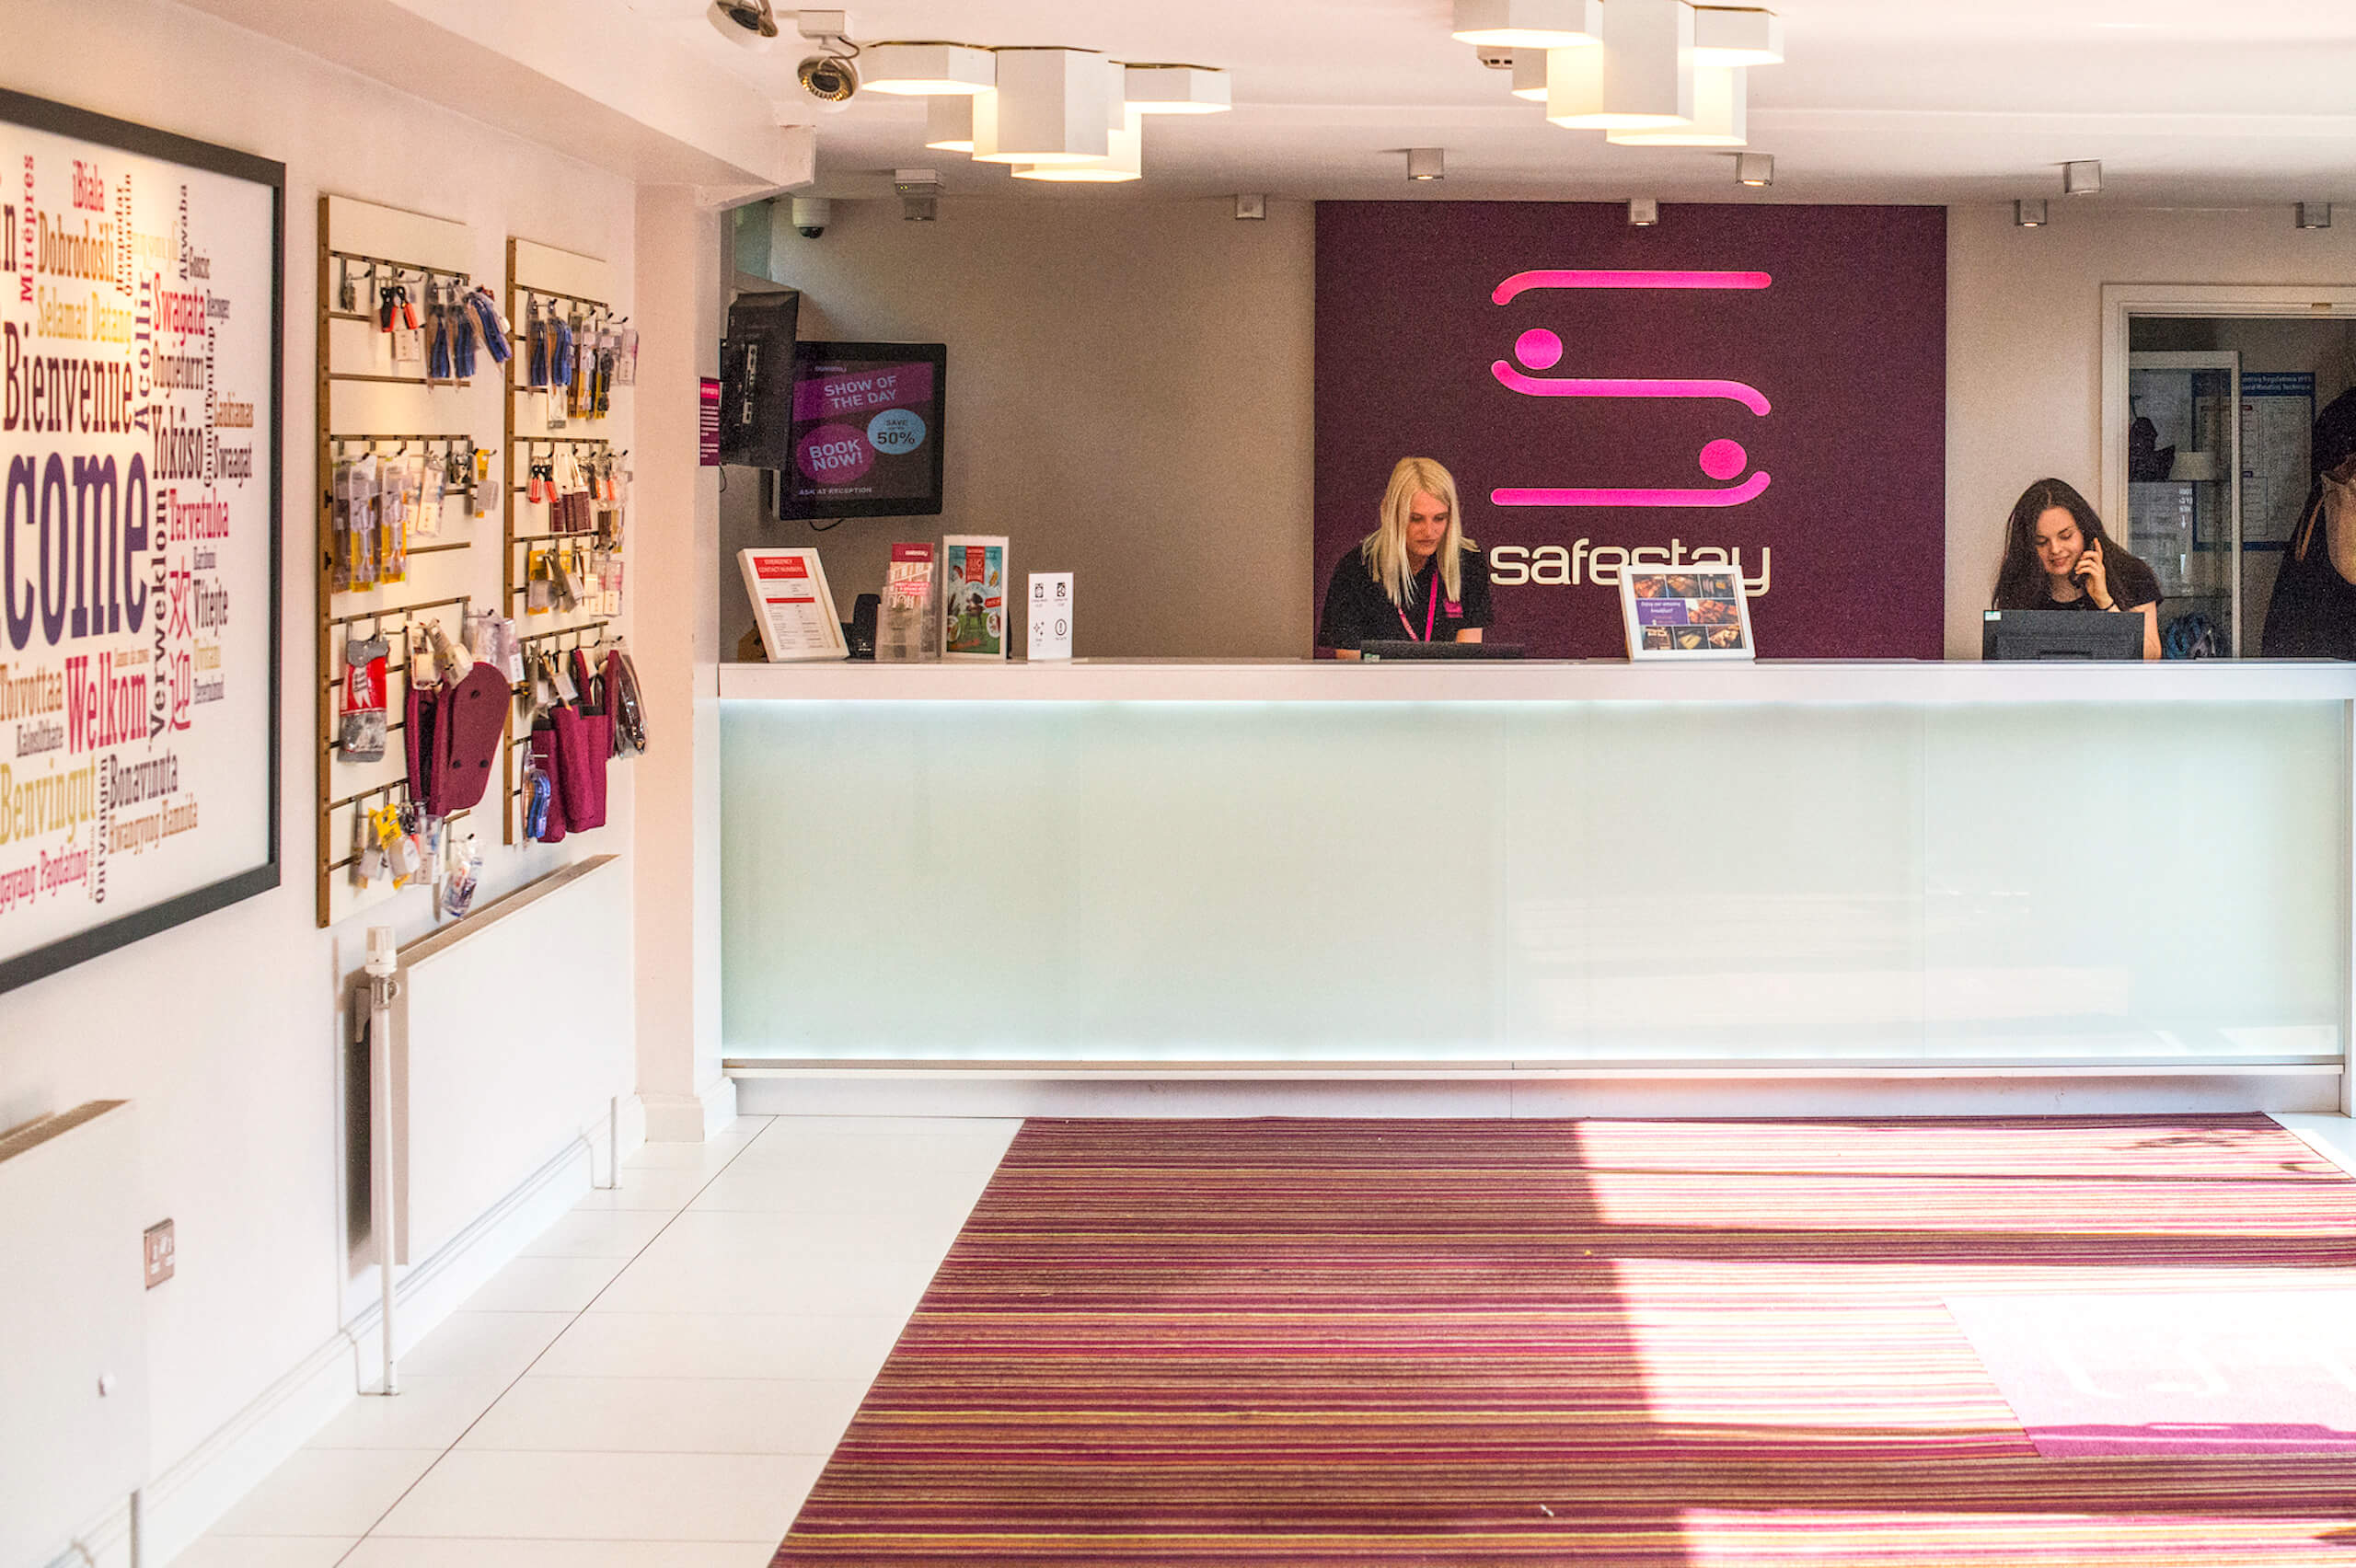 Safestay Kensington Holland Park - Reception